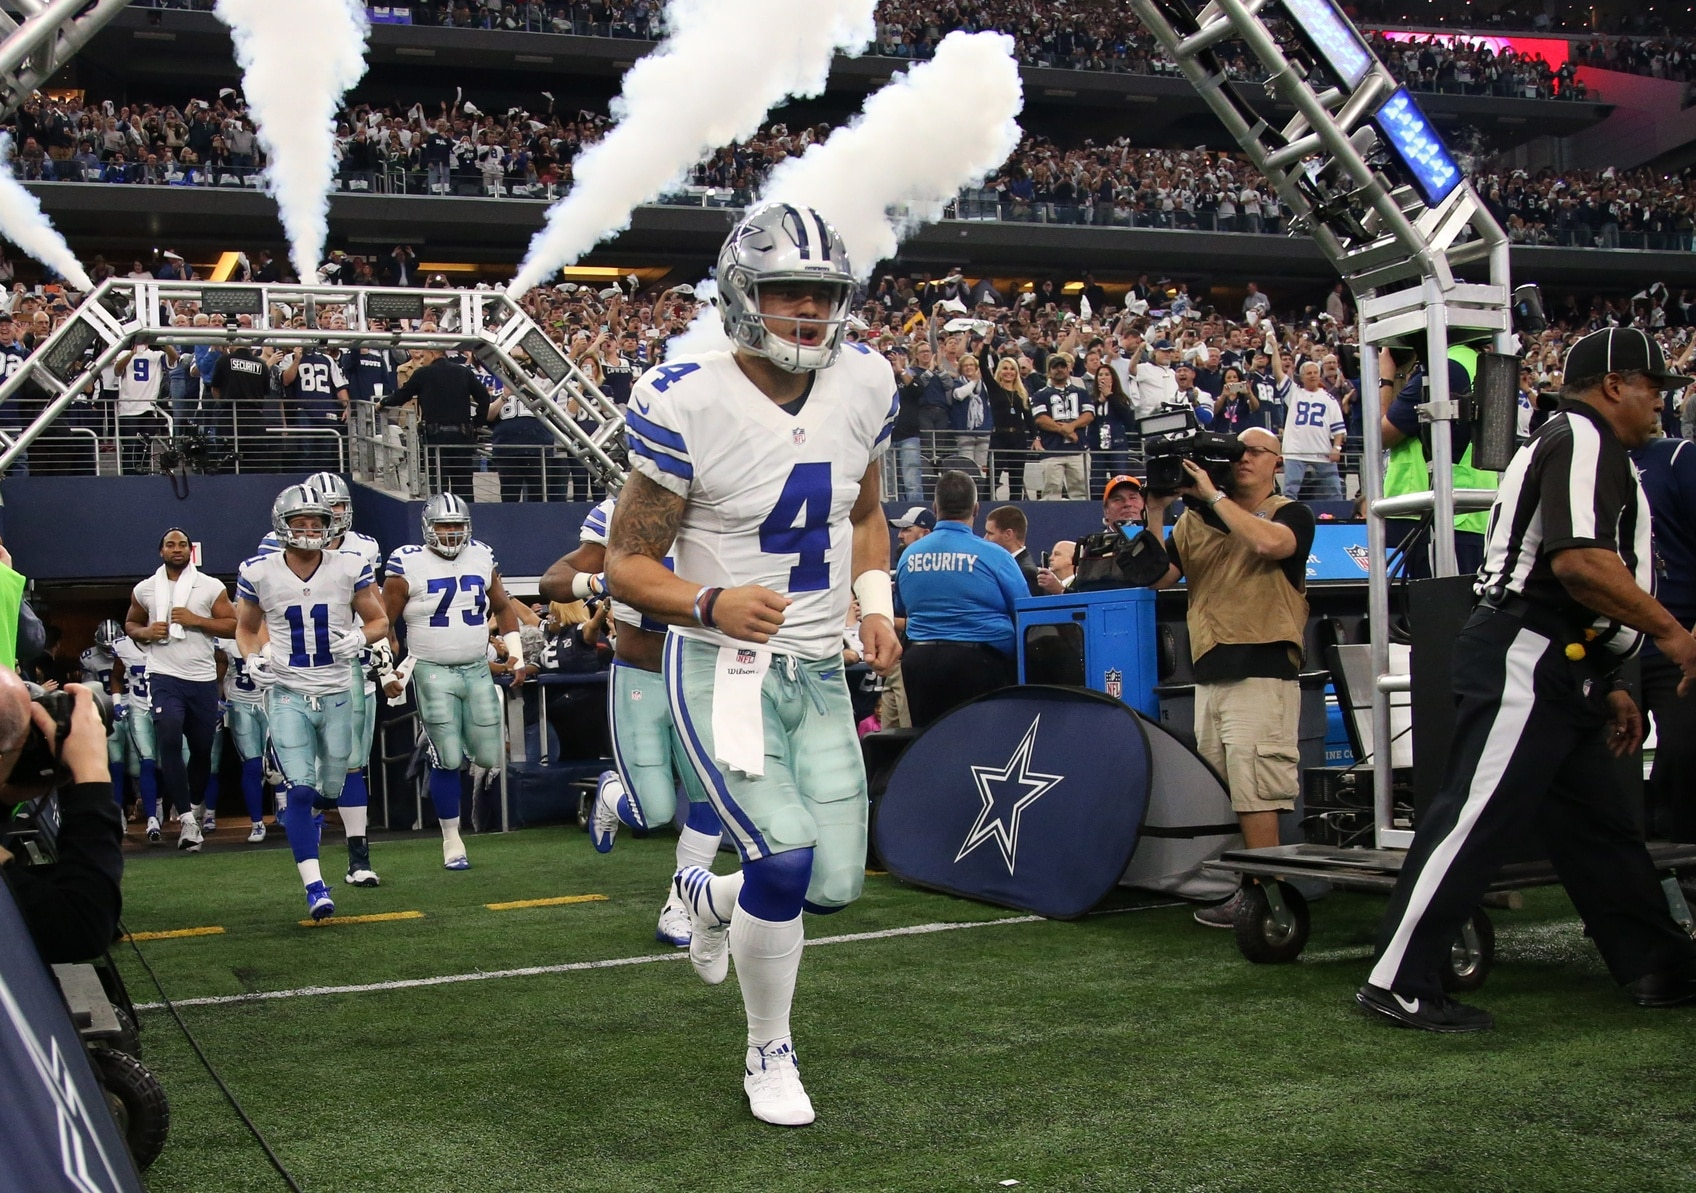 info for c37f5 62927 Dak Prescott beats Tom Brady, Cowboys dominate NFL jersey sales